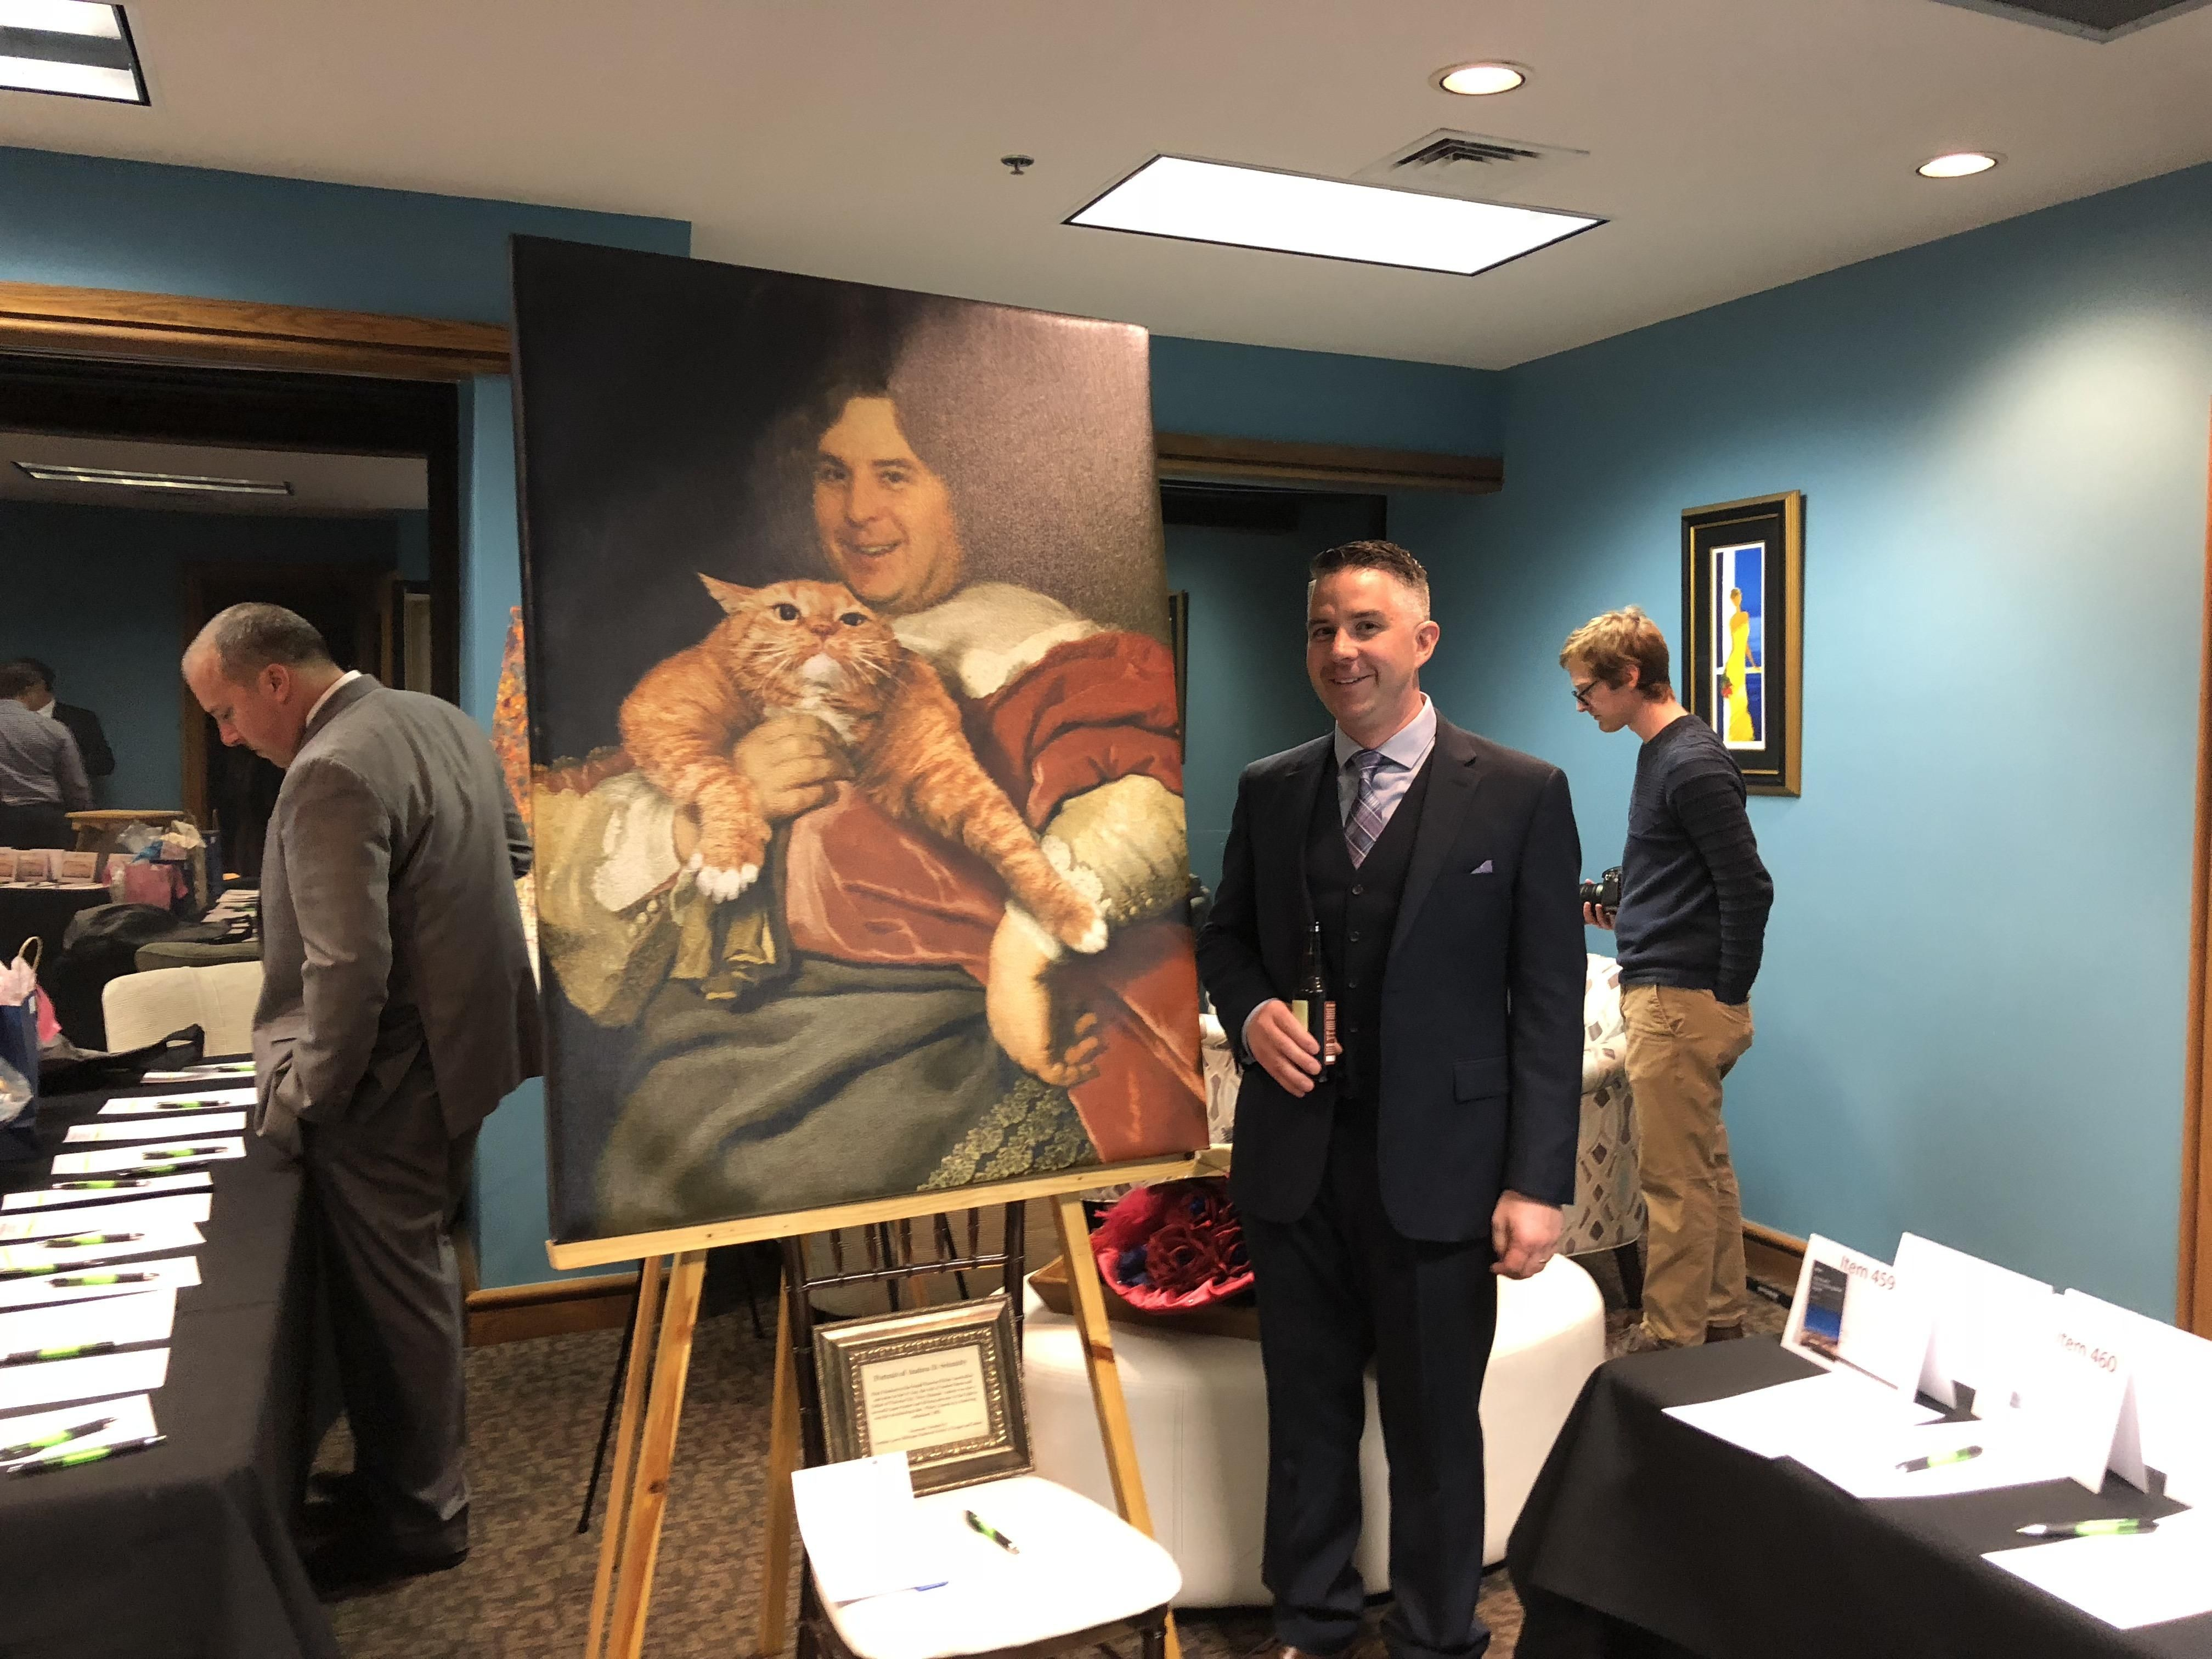 How to win a prank war. My friend snuck a heinous portrait of me into a charity auction that I was attending. Sold for $200.